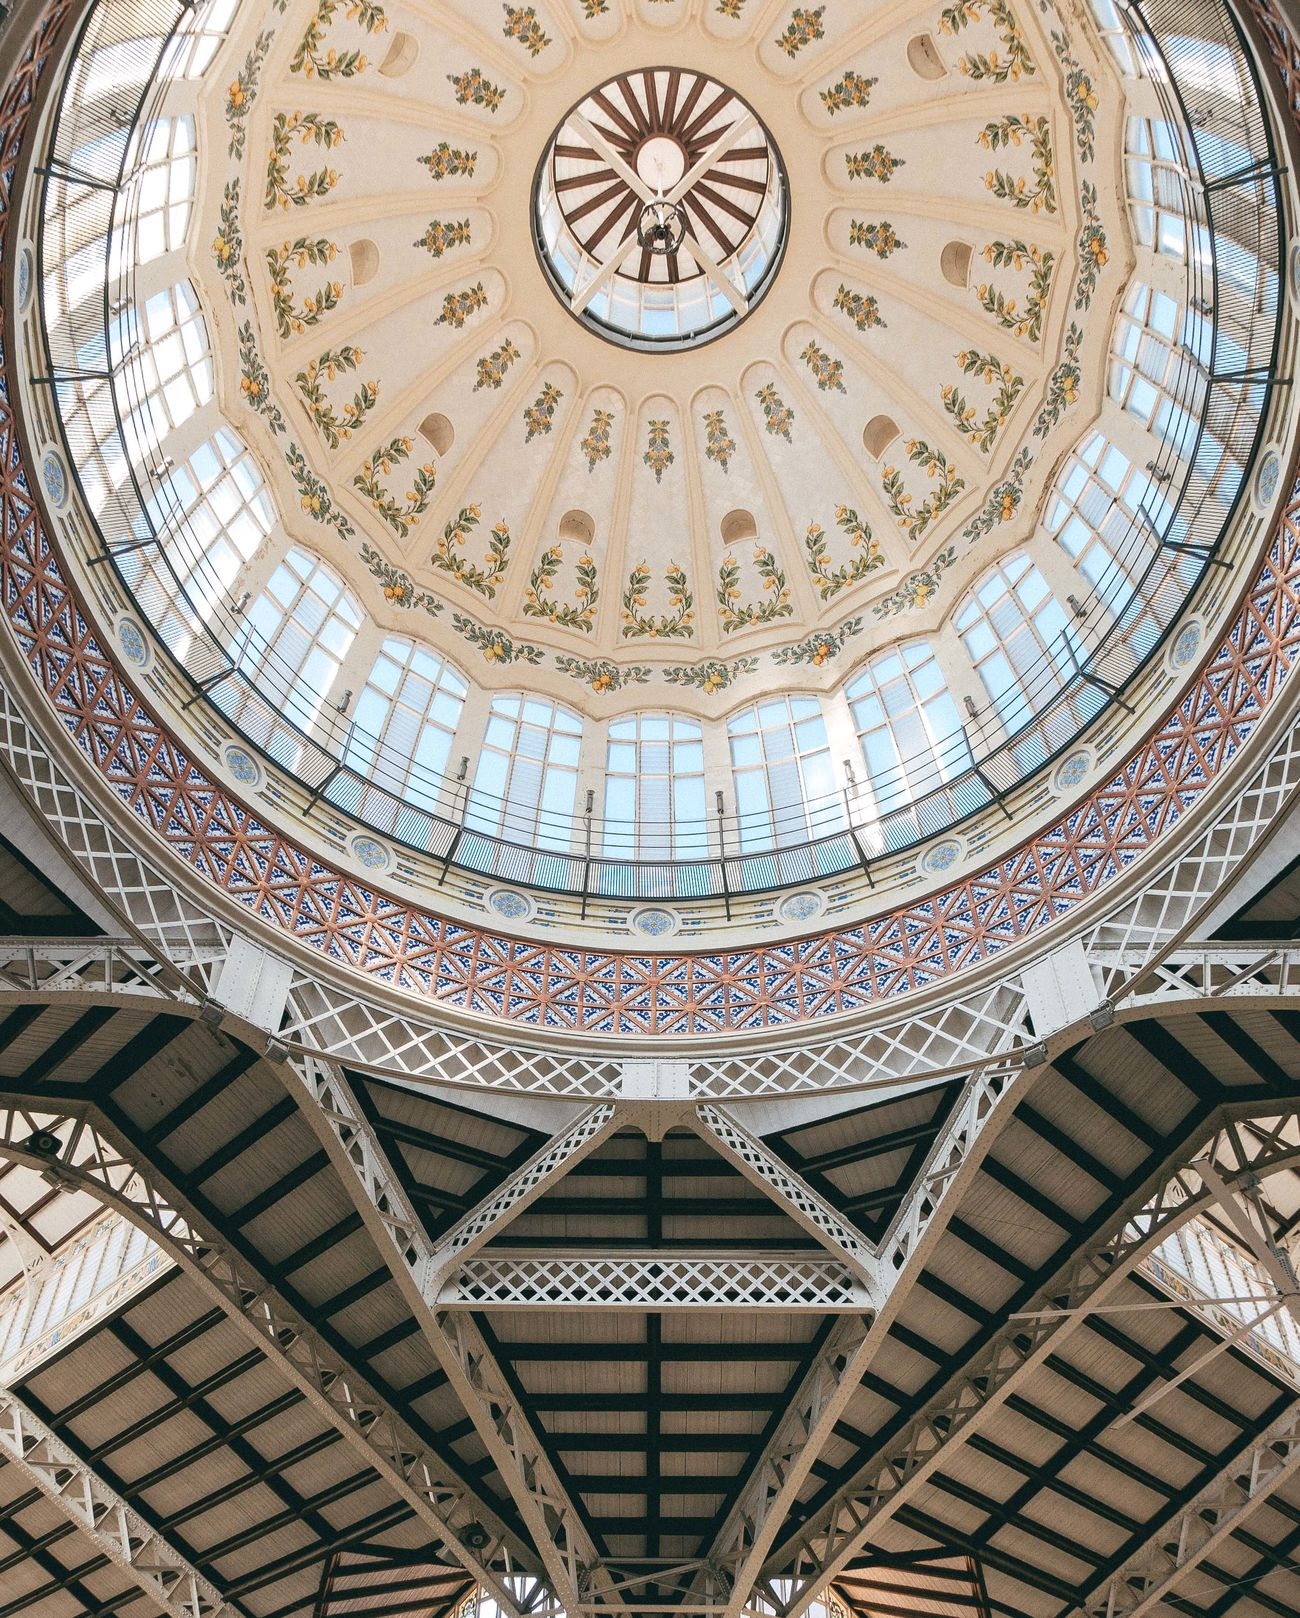 Architectural Feature Architecture Built Structure Ceiling Ceiling Ceiling Design Cupola Dome Indoors  Lookingup Travel Destinations Valencia, Spain València